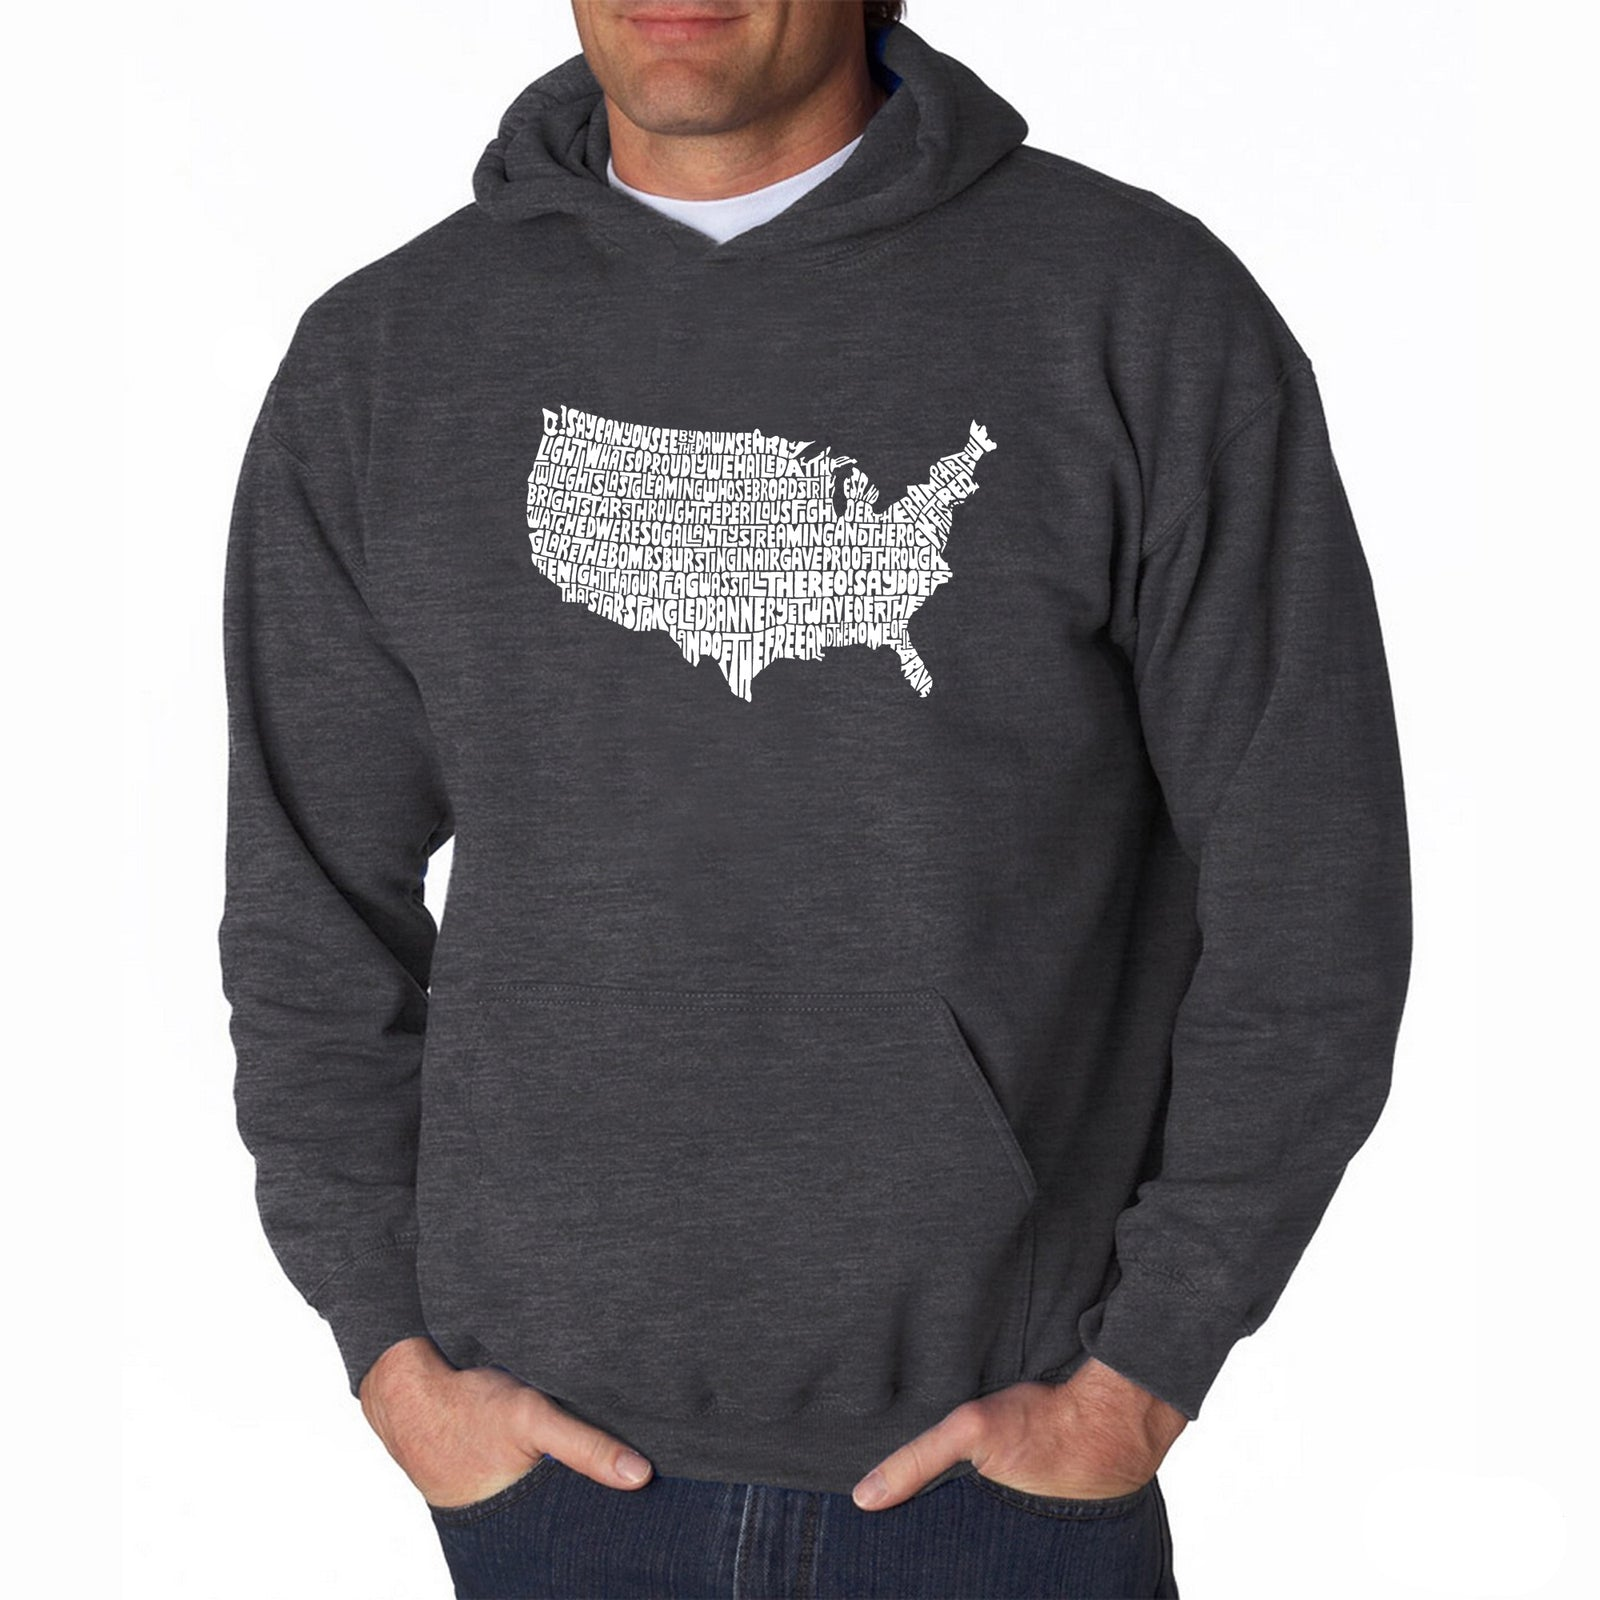 Men's Hooded Sweatshirt - THE STAR SPANGLED BANNER